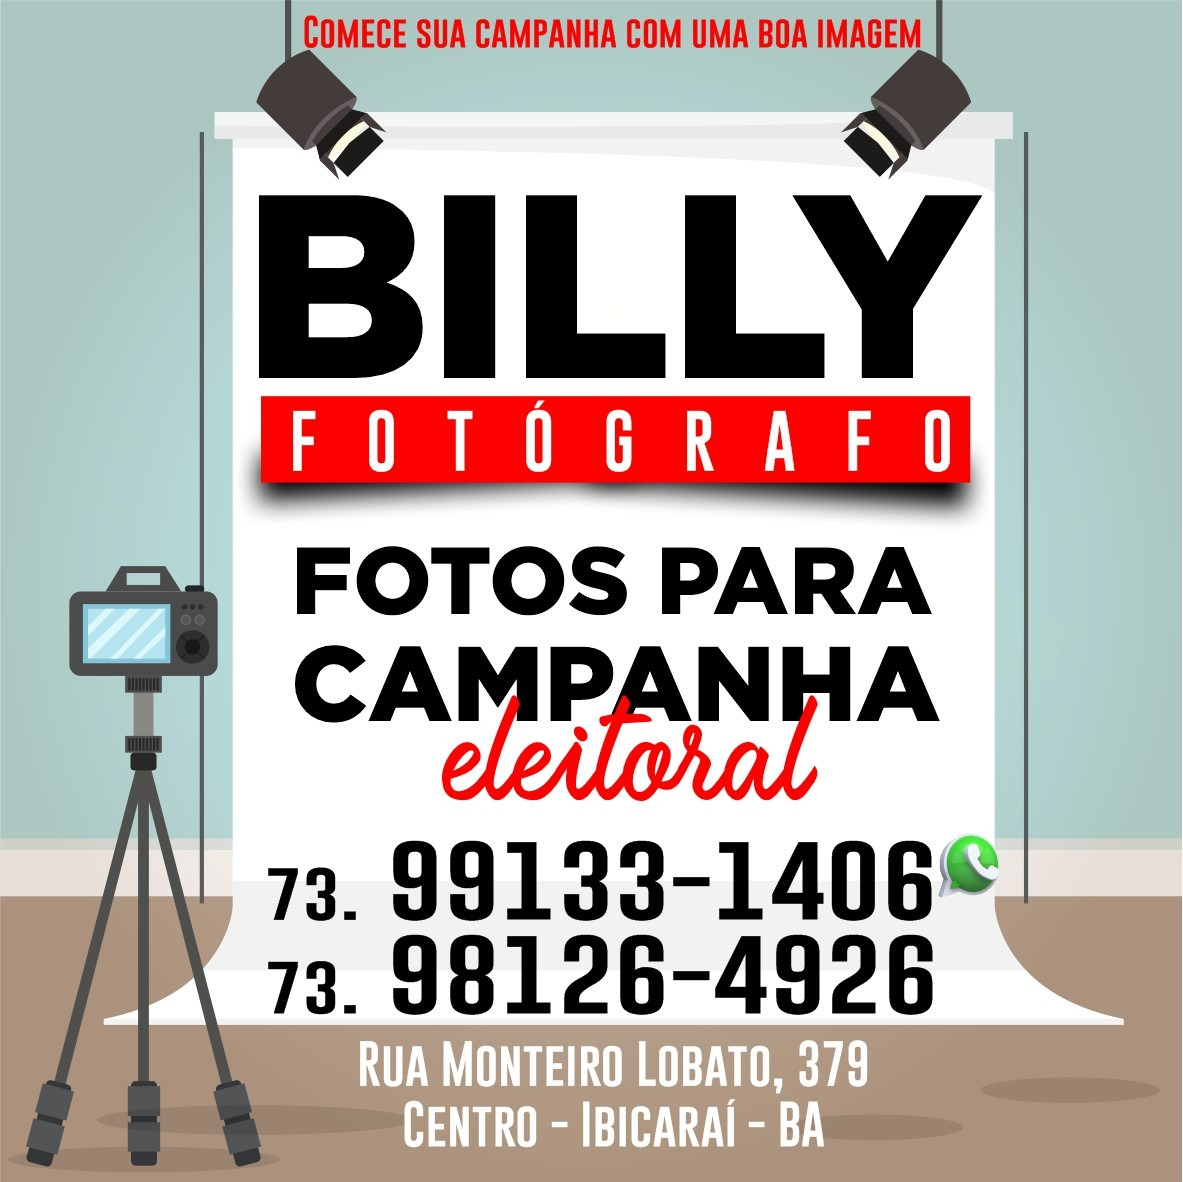 BILLY FOTOGRAFO